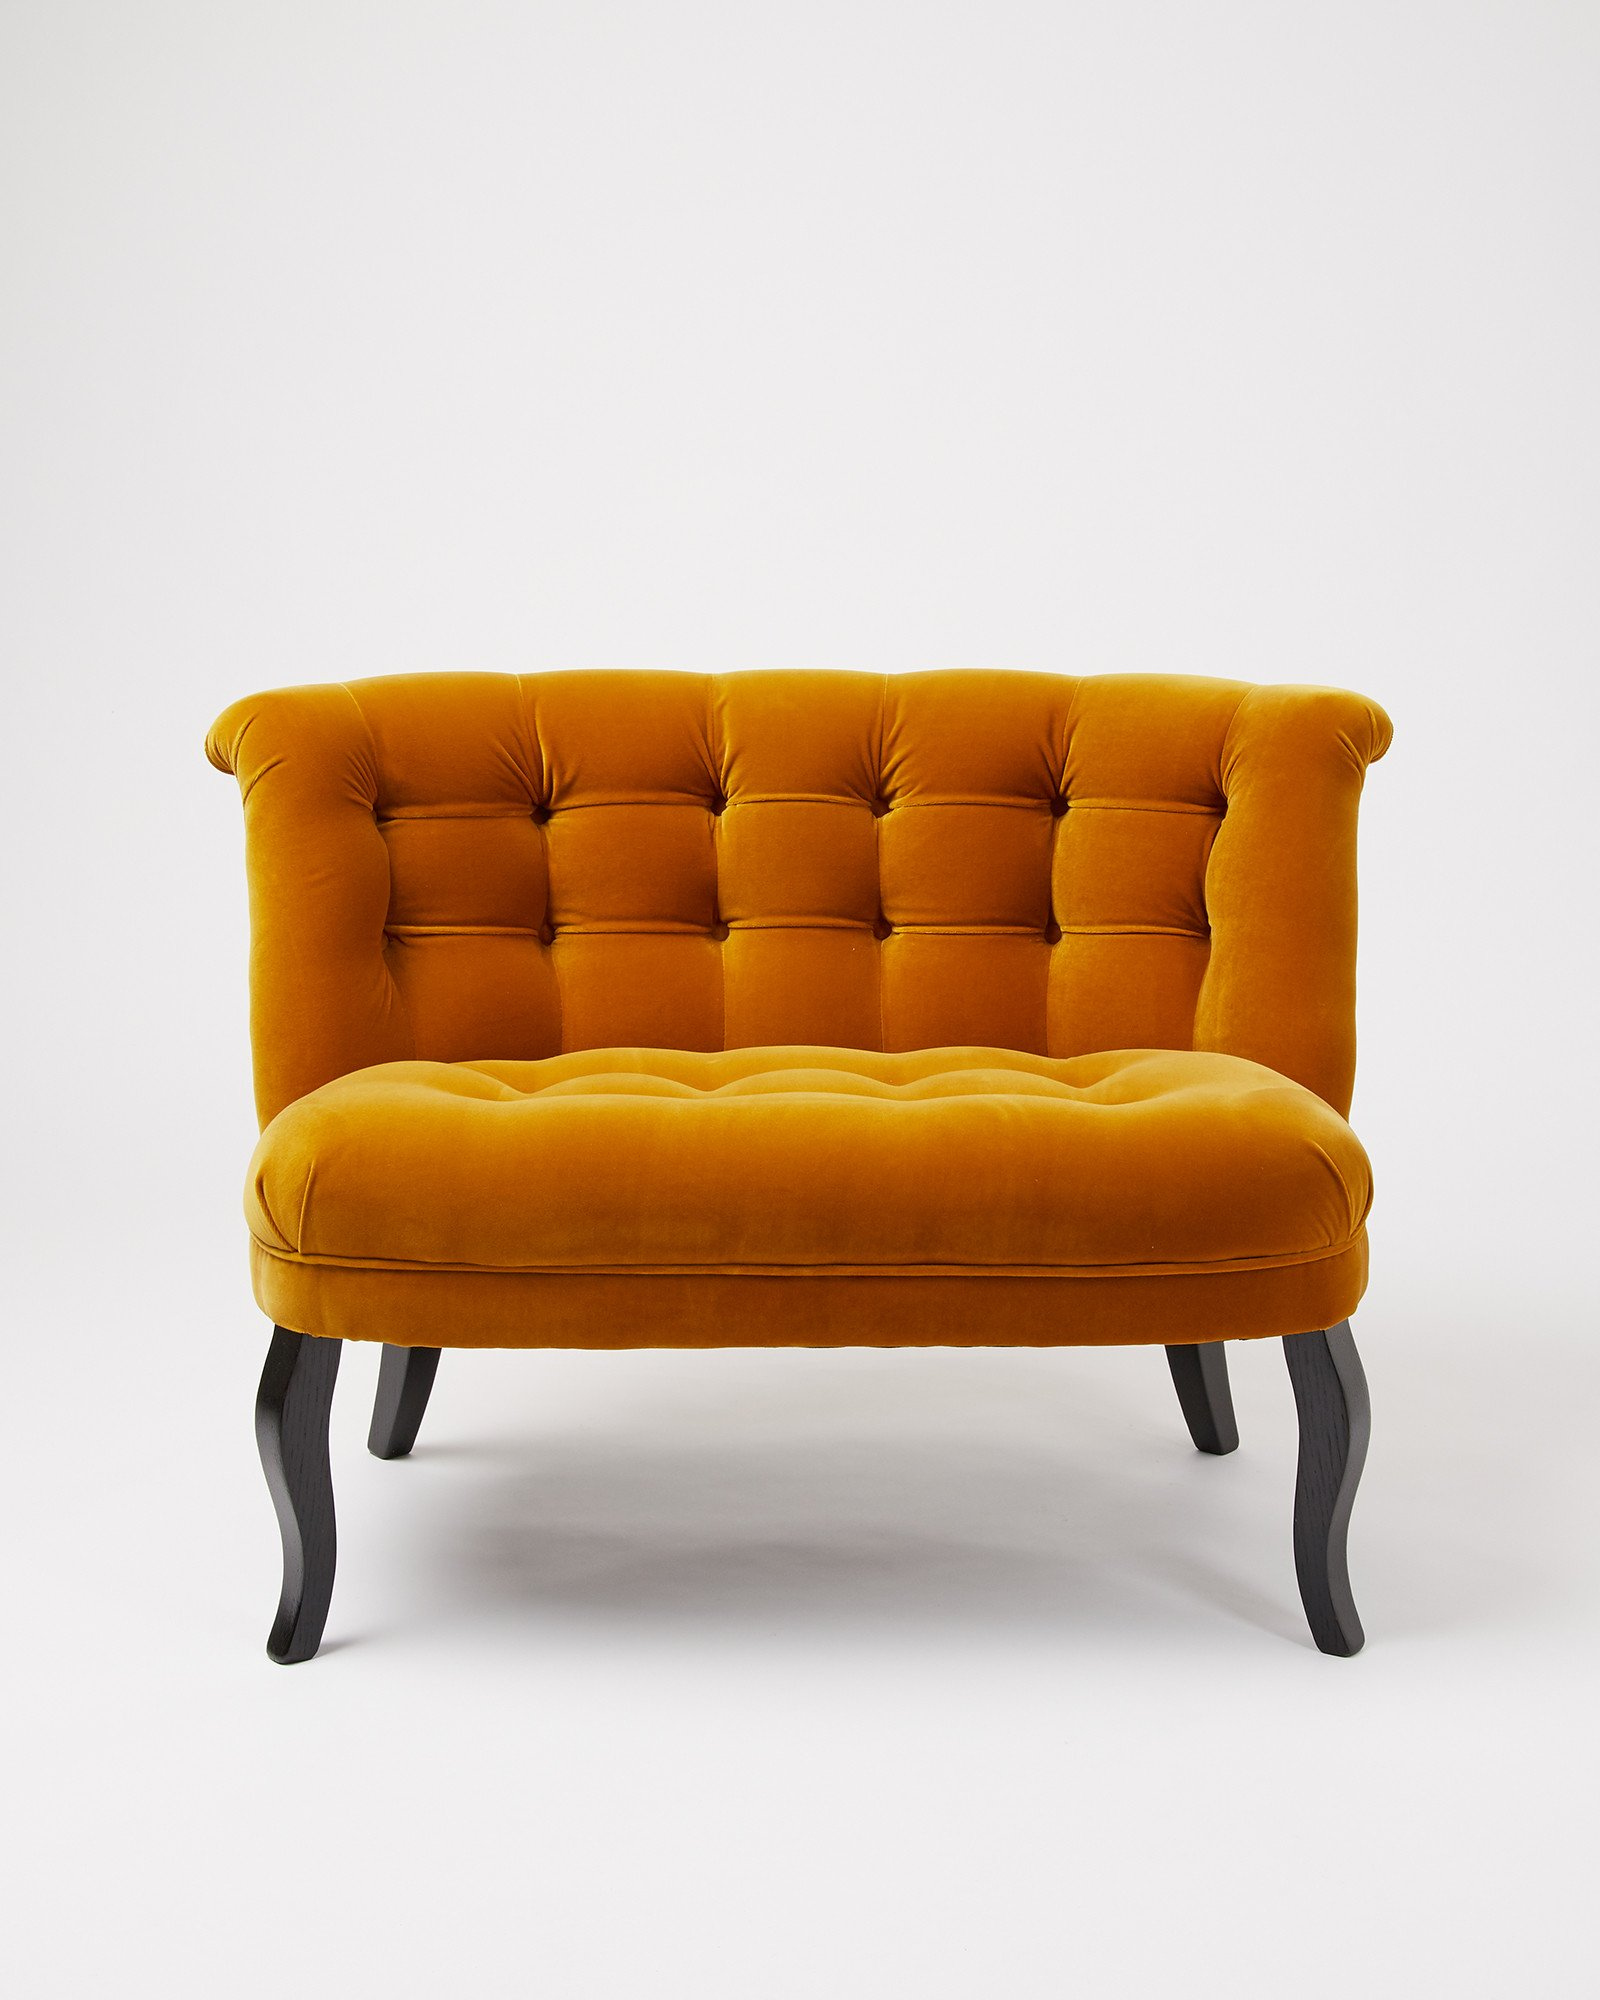 Velvet Saffron Yellow Loveseat